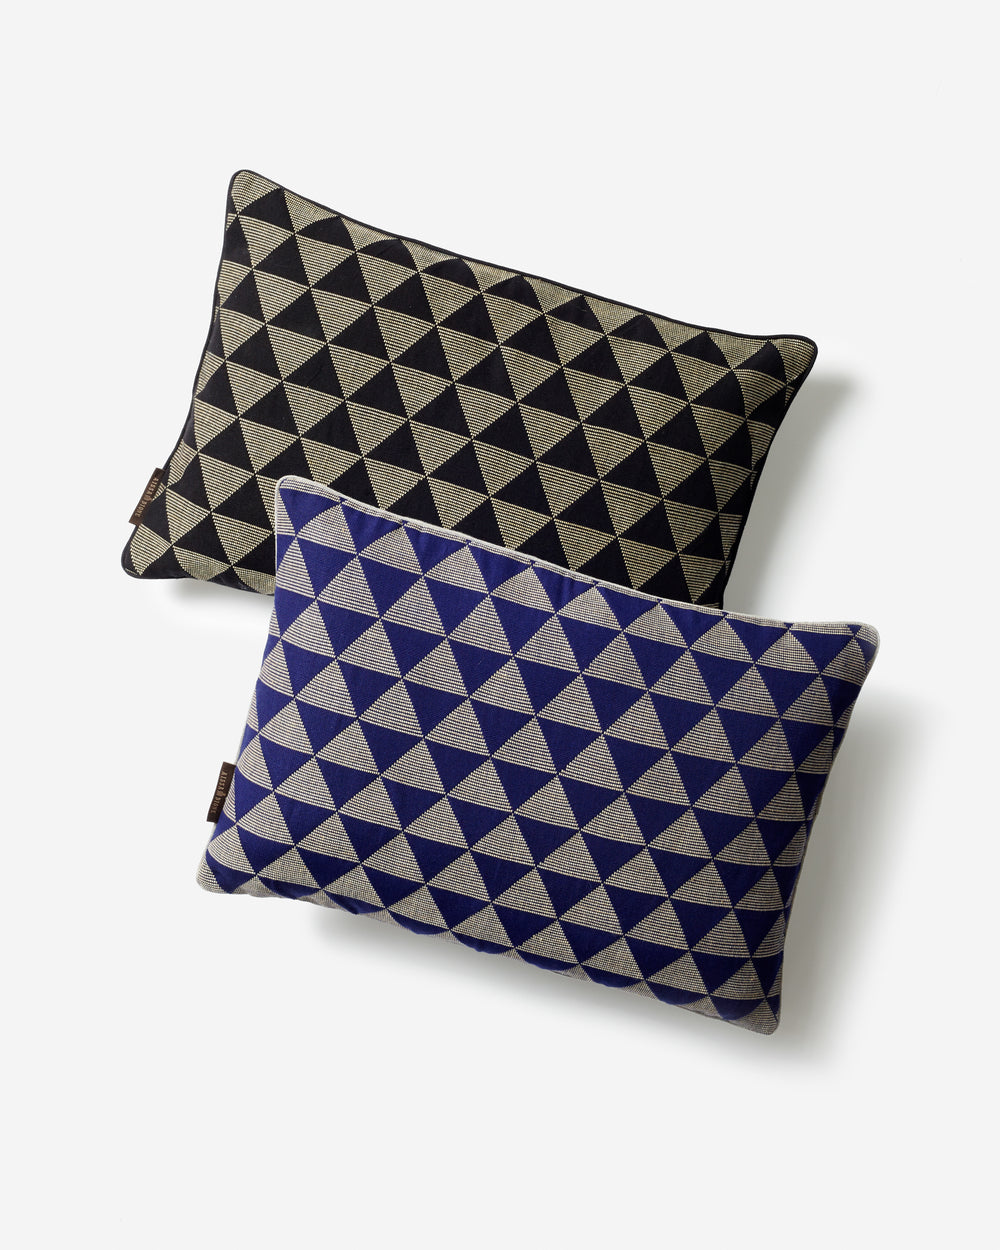 Luxury Hand-Woven Cushion – Kameroun Blue